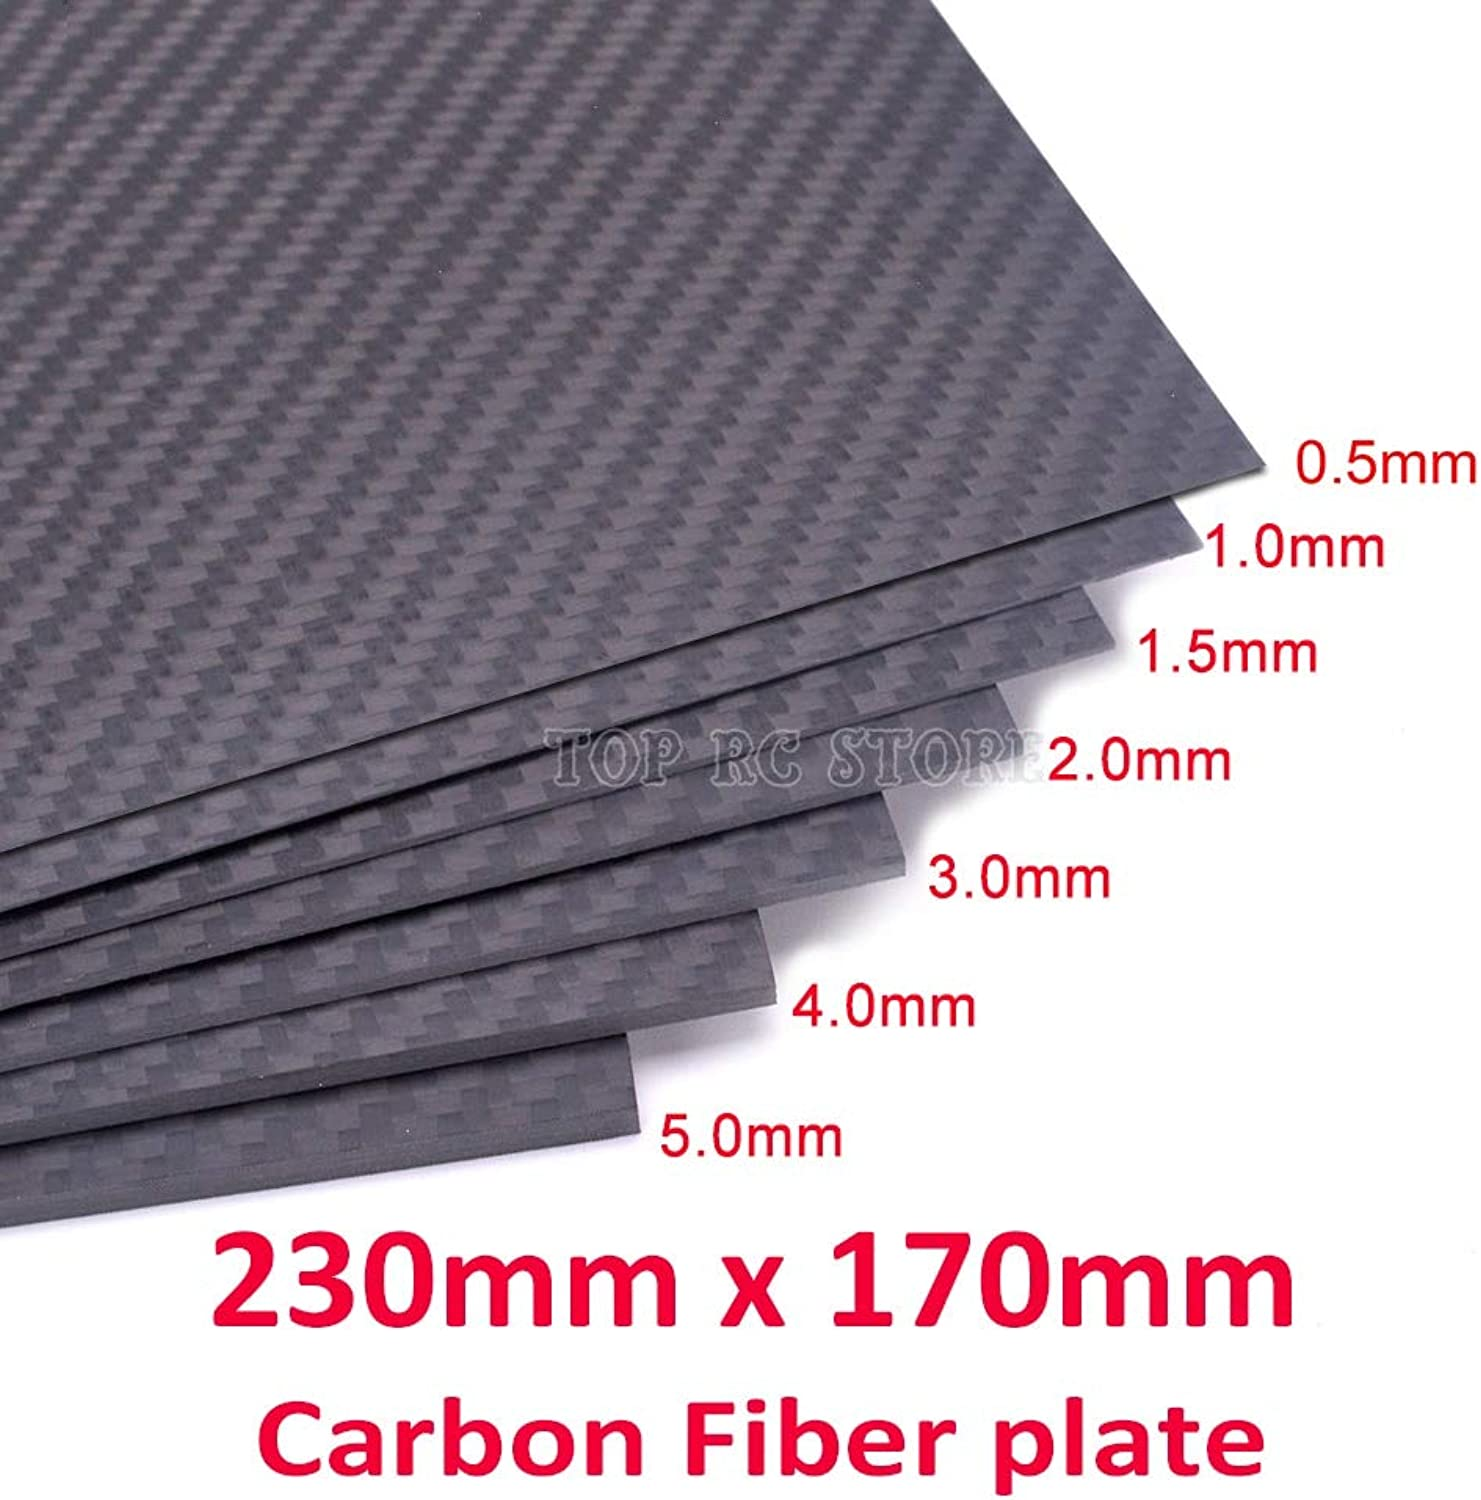 Laliva 230mm x 170mm 3k Carbon Fiber Plate Panel 0.5mm 1mm 1.5mm 2mm 3mm 4mm 5mm Full Carbon Fiber Plate Panel Sheet for RC FPV Drone - (color  1.5mm Thickness)